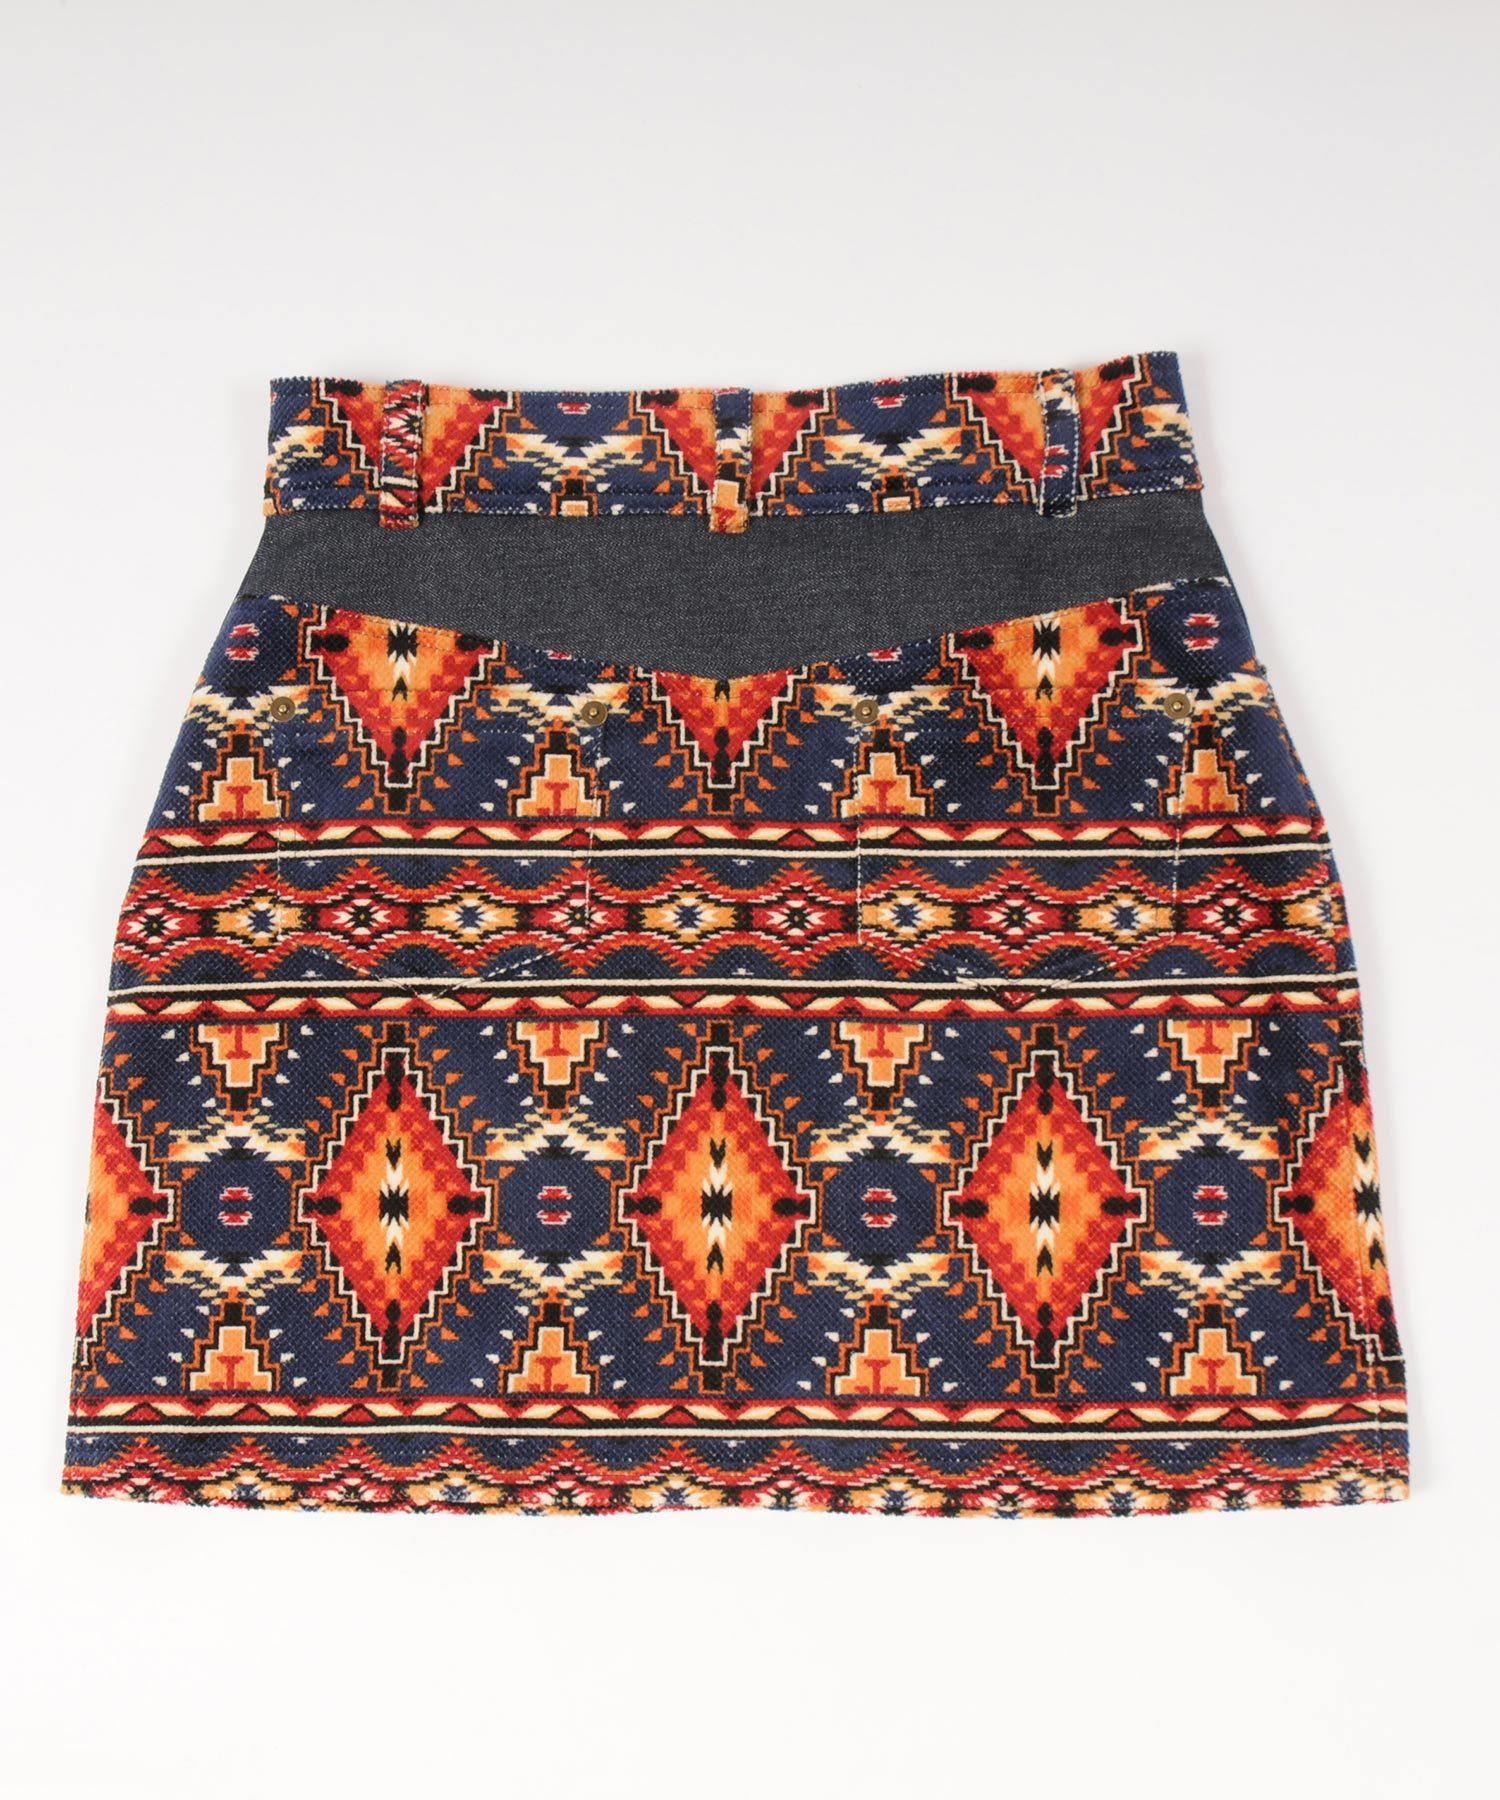 df19SS-18 NATIVE SHORT SKIRT